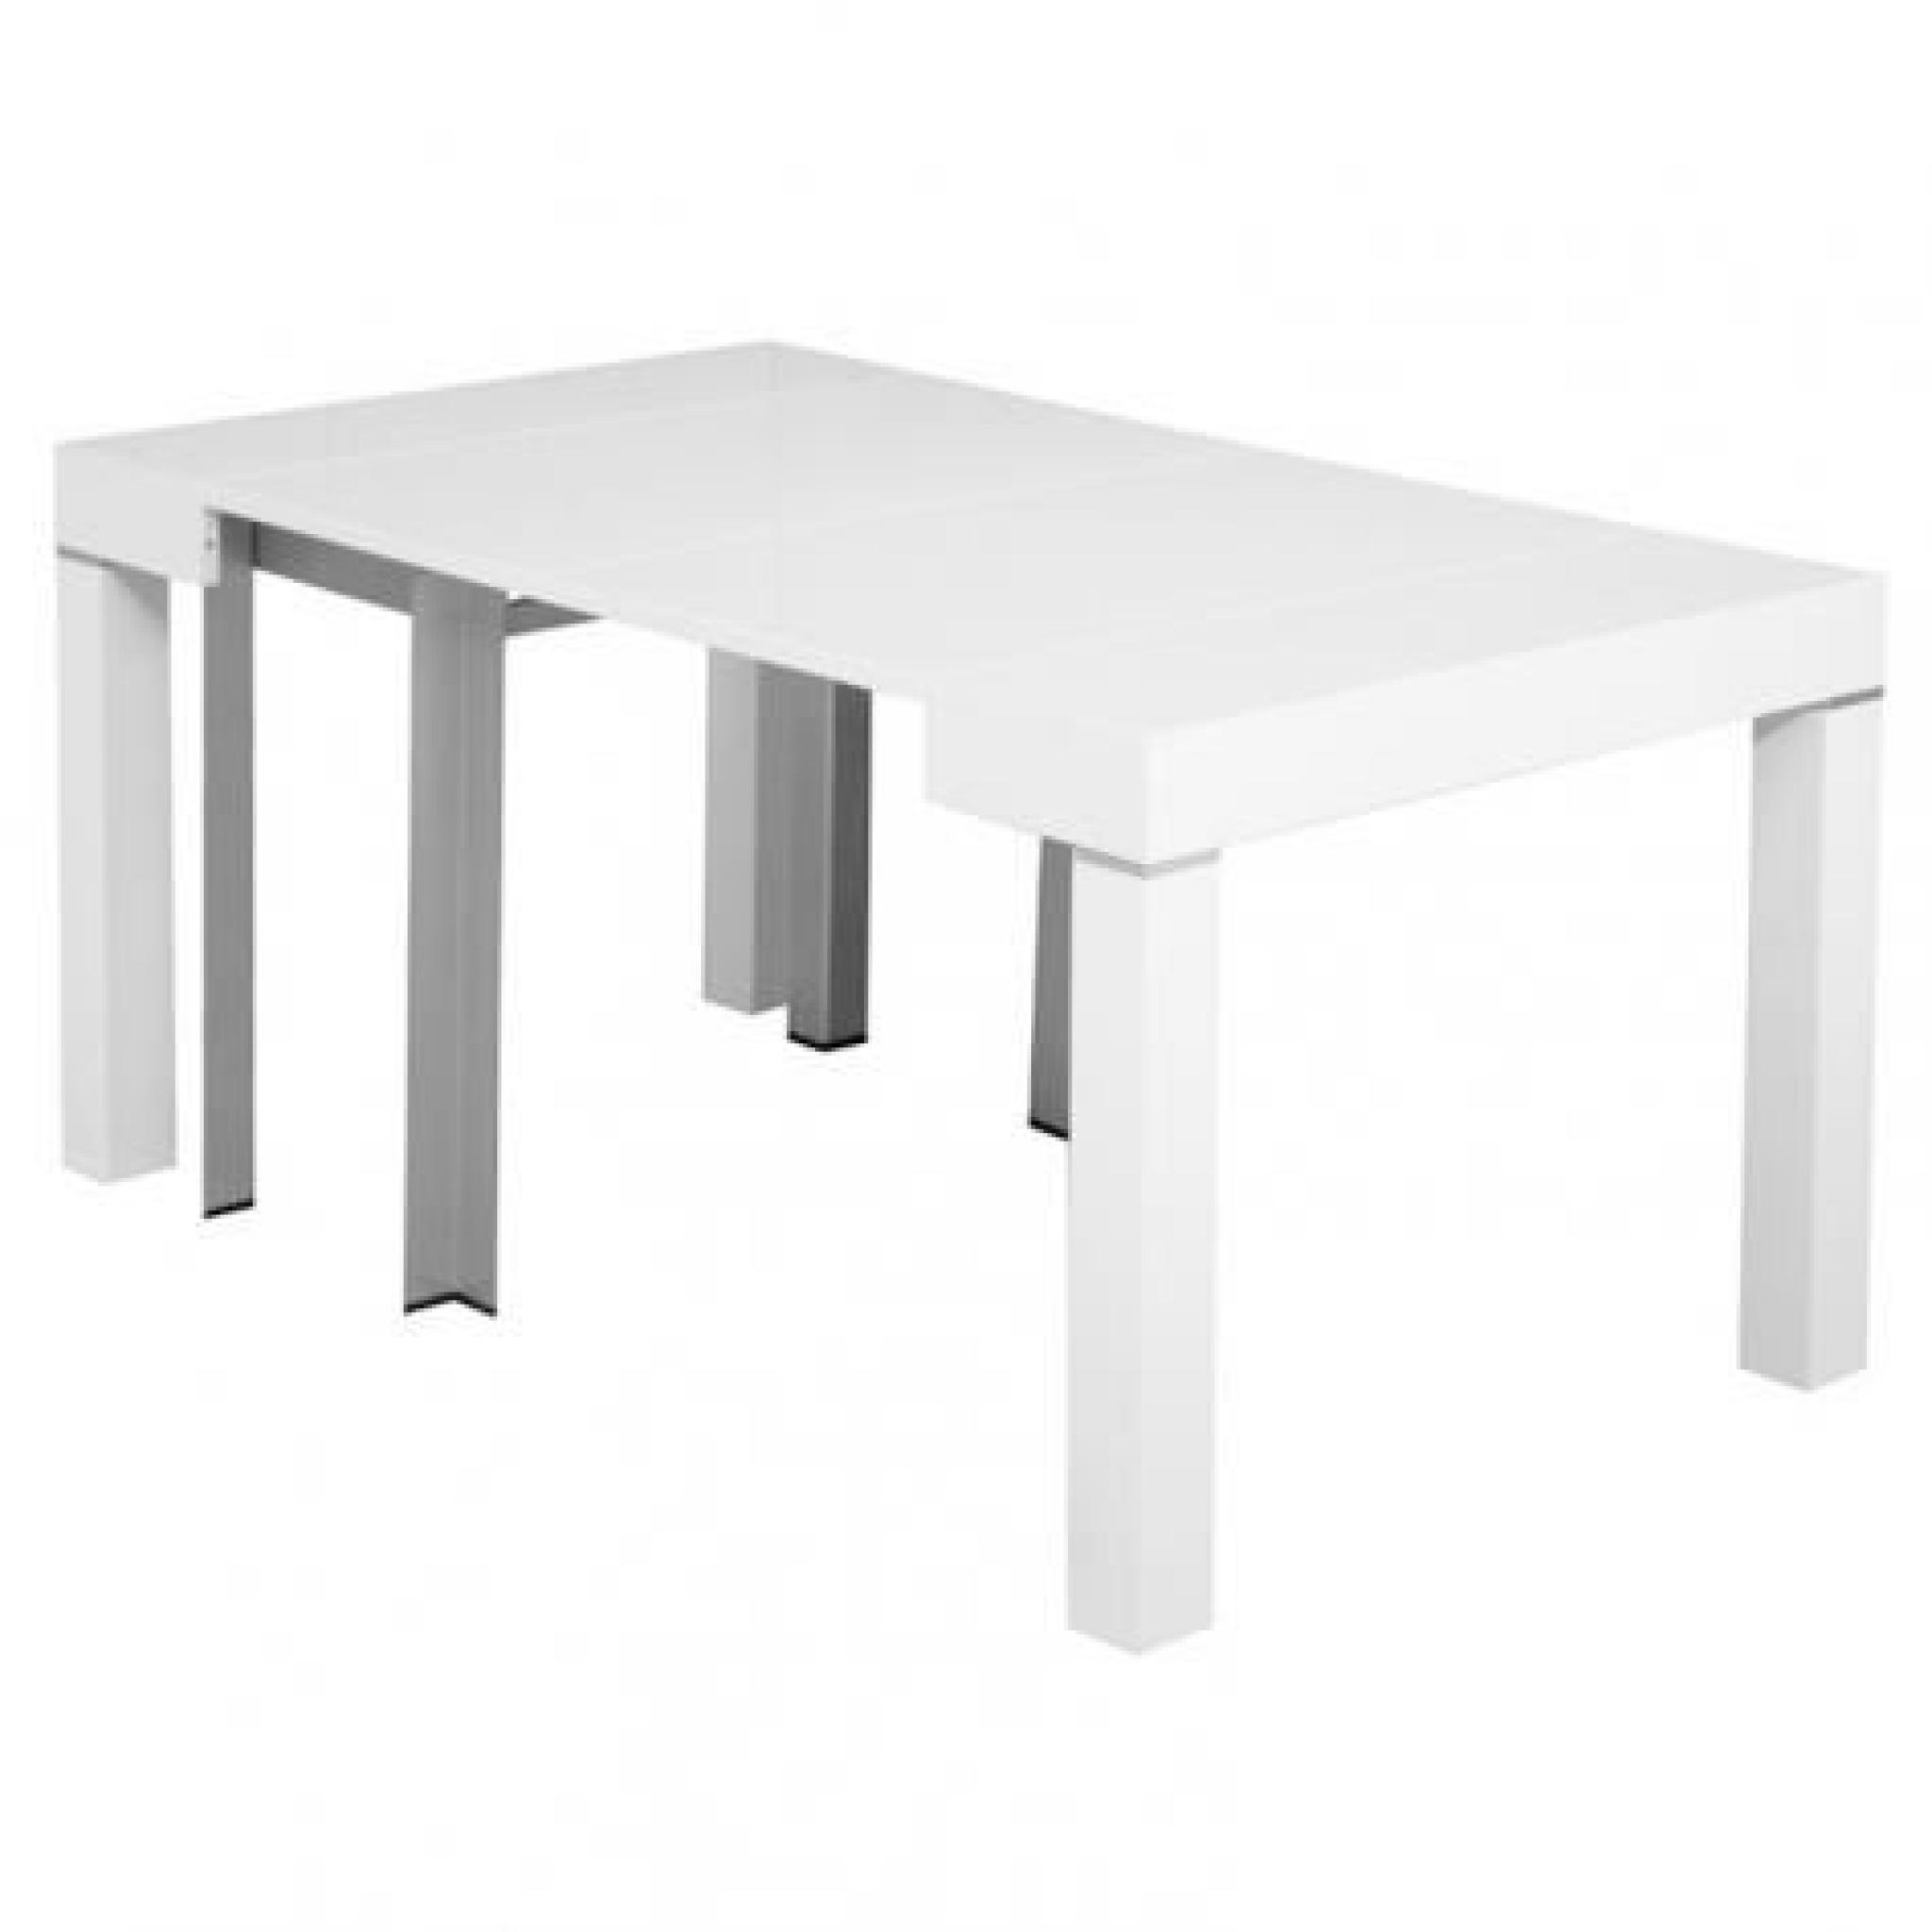 Table console extensible blanche laqu e 4 rallonges alesia - Table extensible laquee ...